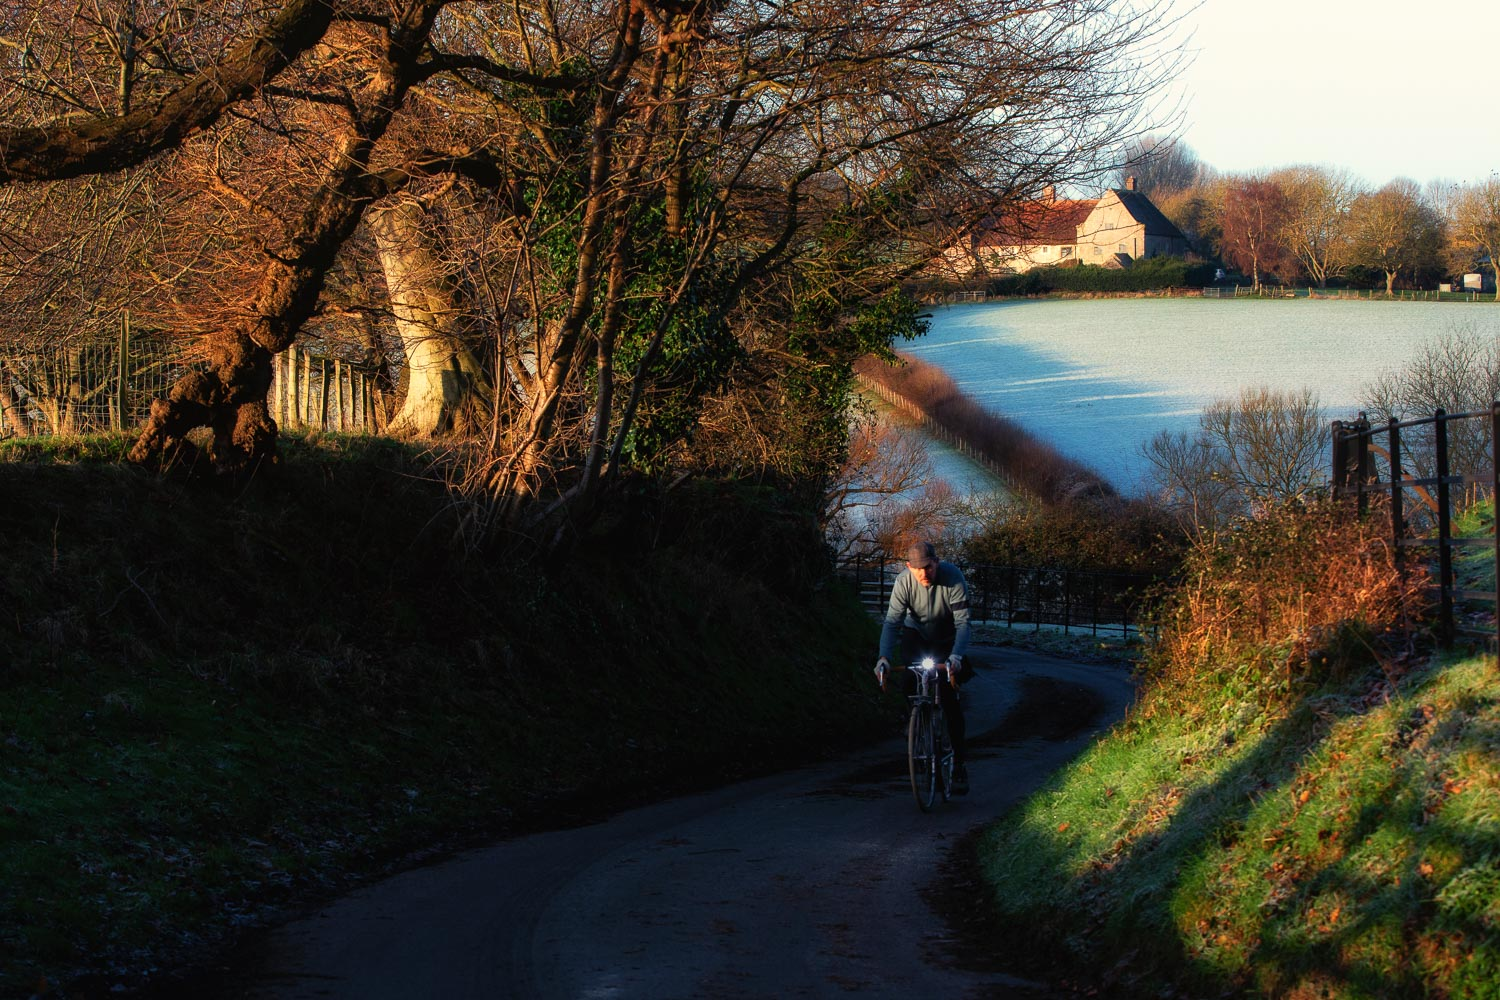 Cycling in along a country lane in Sussex at sunrise on a frosty morning